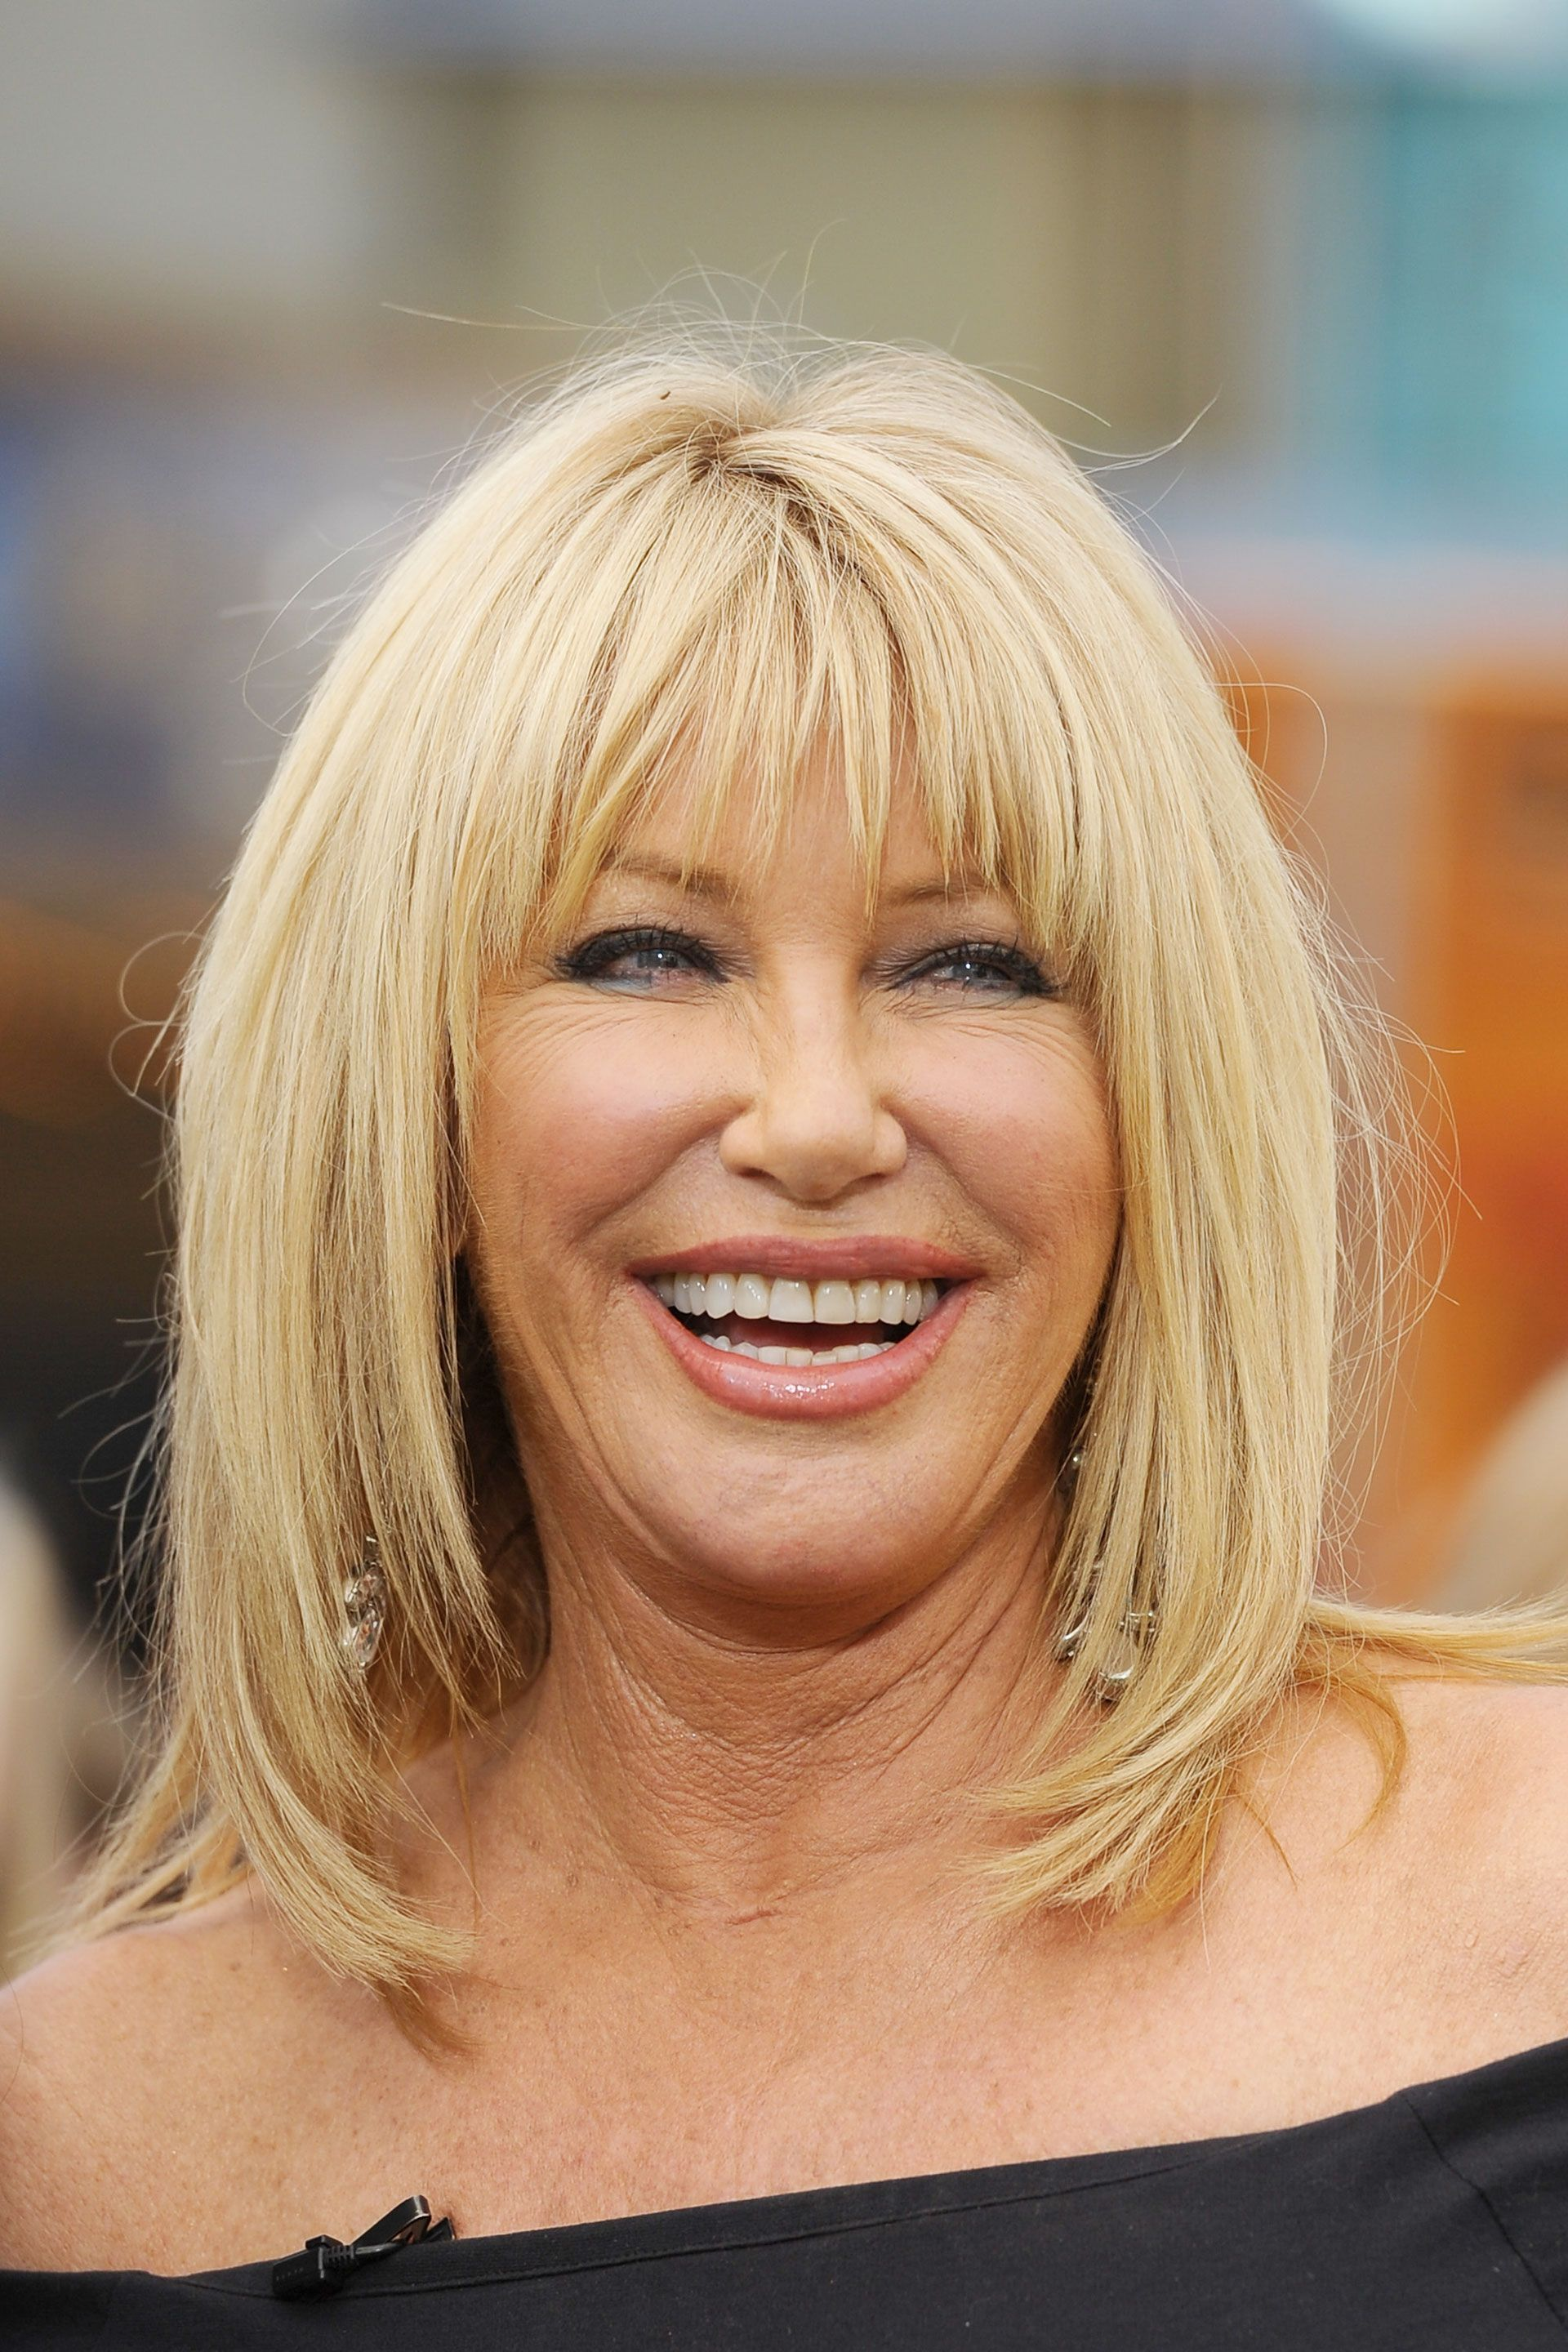 the 50 best hairstyles for women over 50 | hairstyles | hair